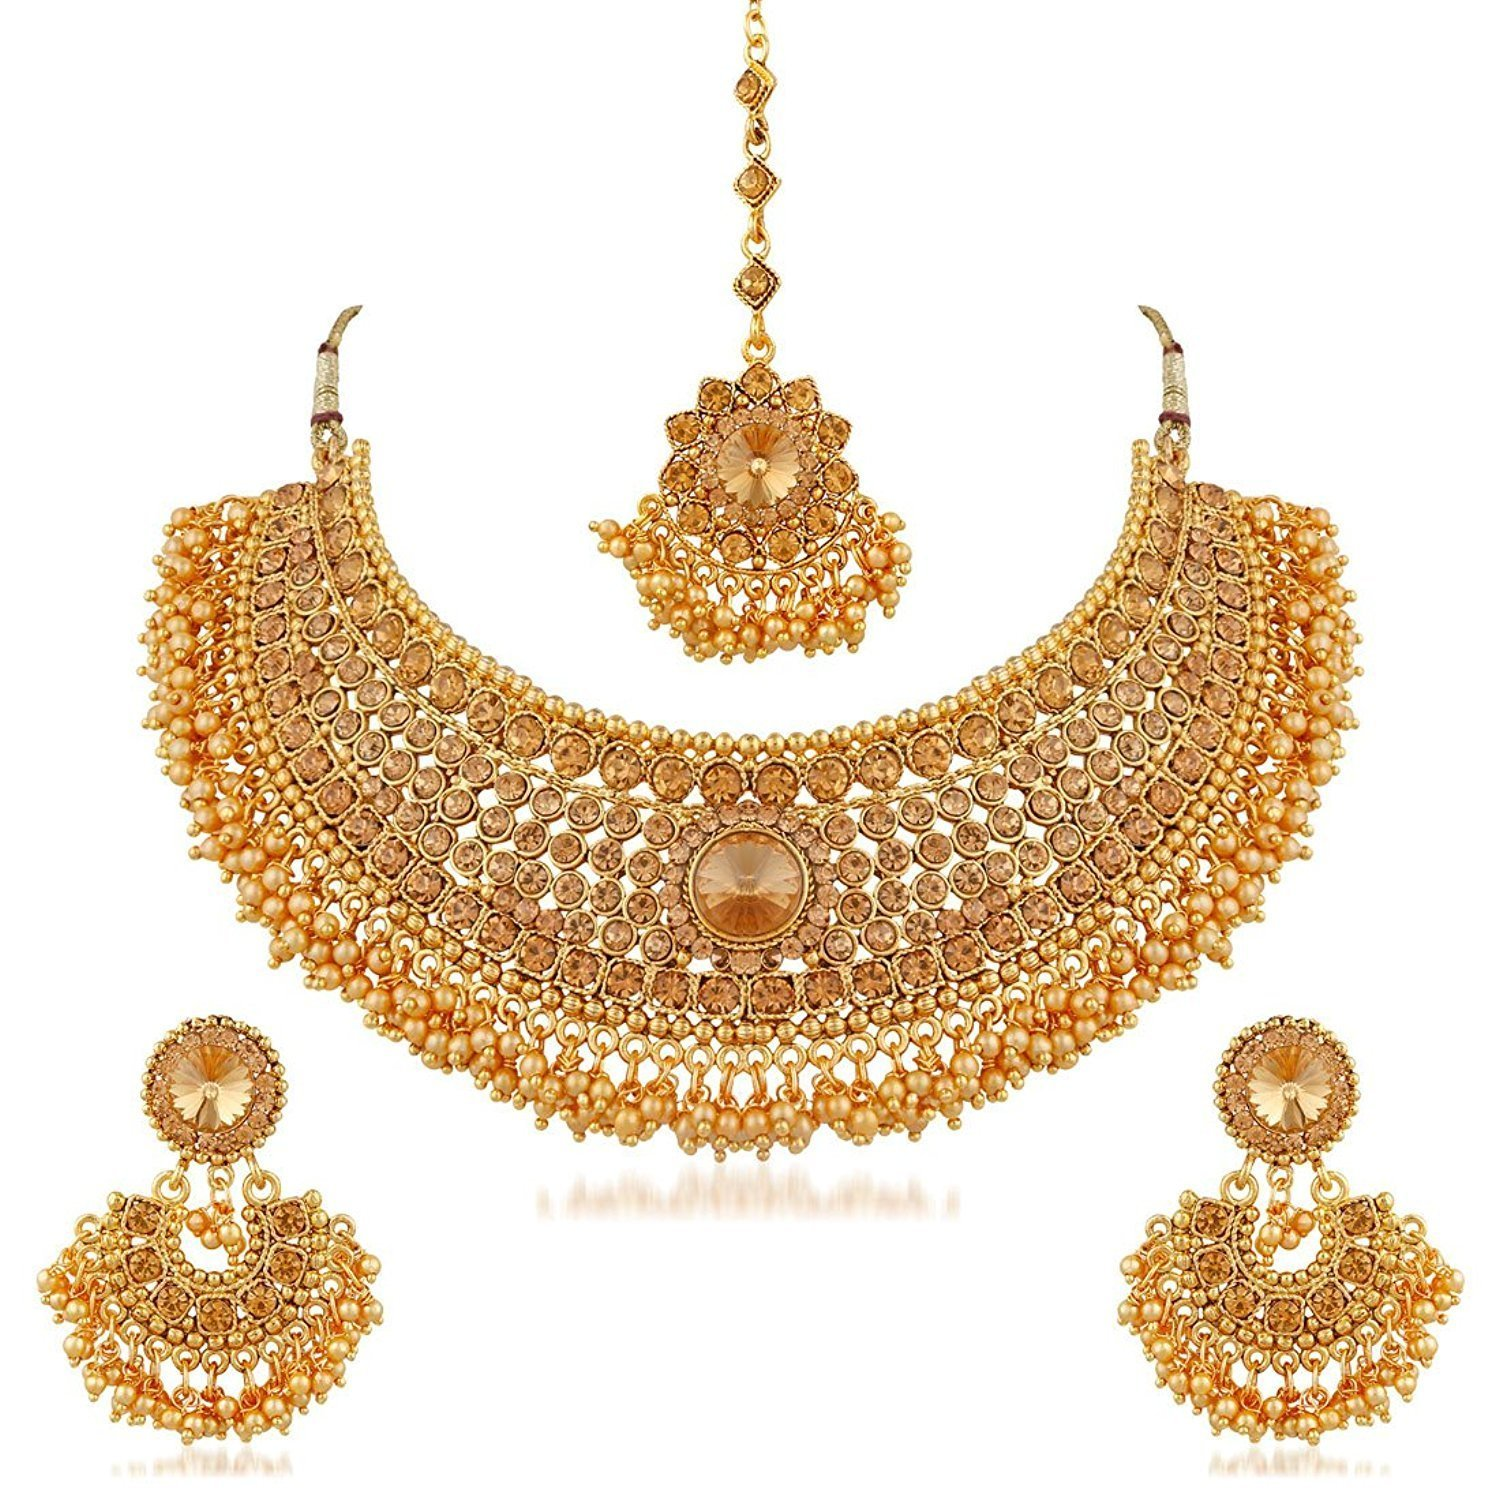 Crunchy Fashion Bollywood Style Gold Plated Traditional Indian Jewelry Necklace Set with Earrings & Tika